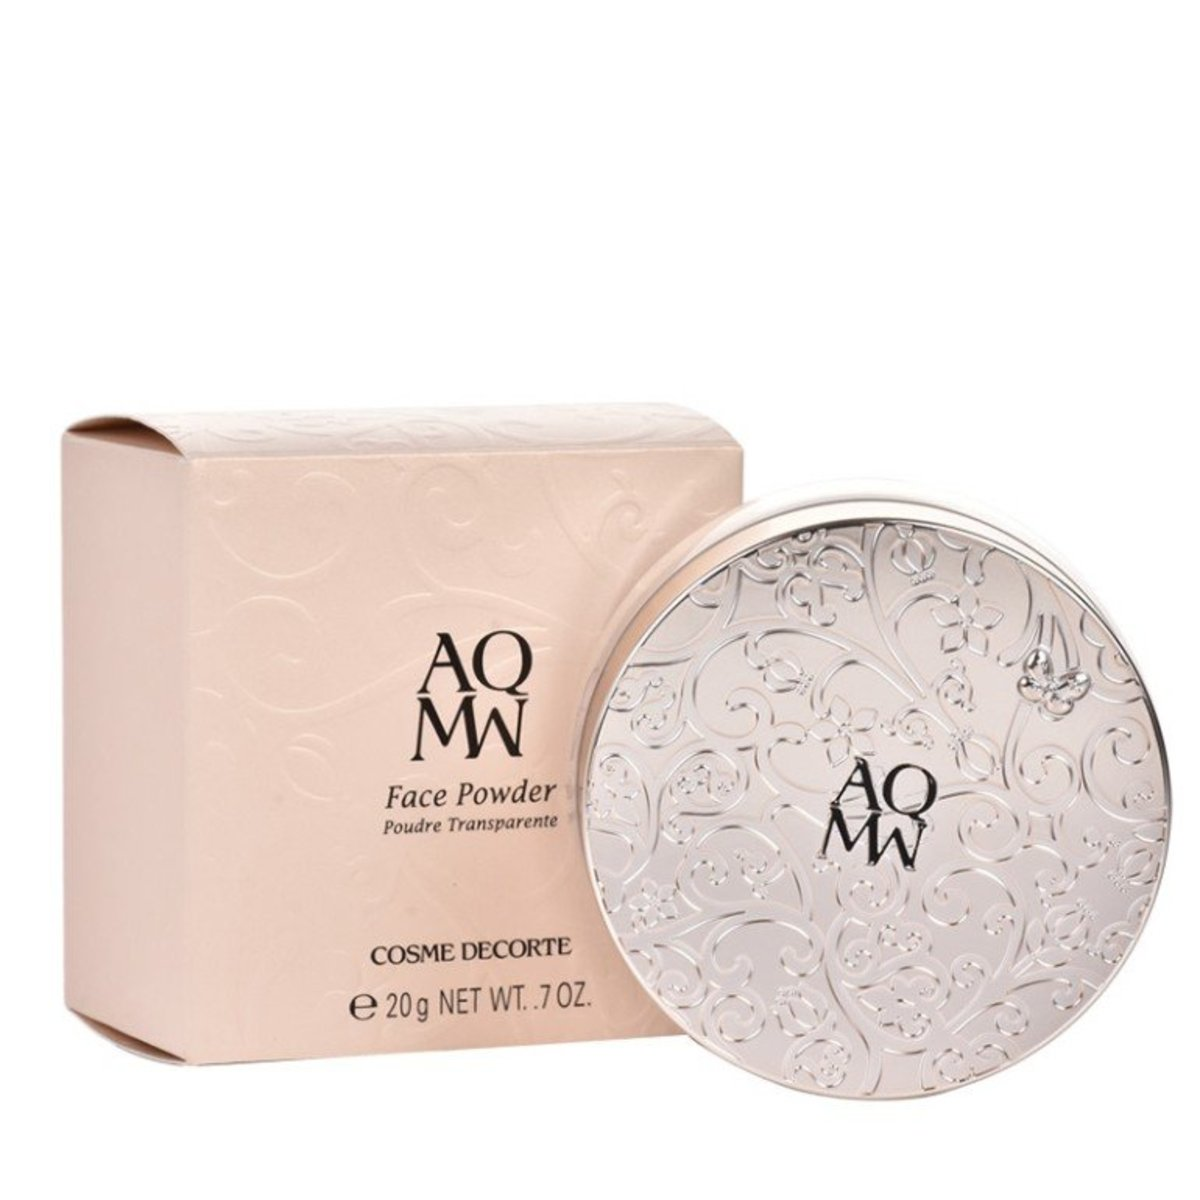 AQ MW Face Powder 20g (Parallel Import)